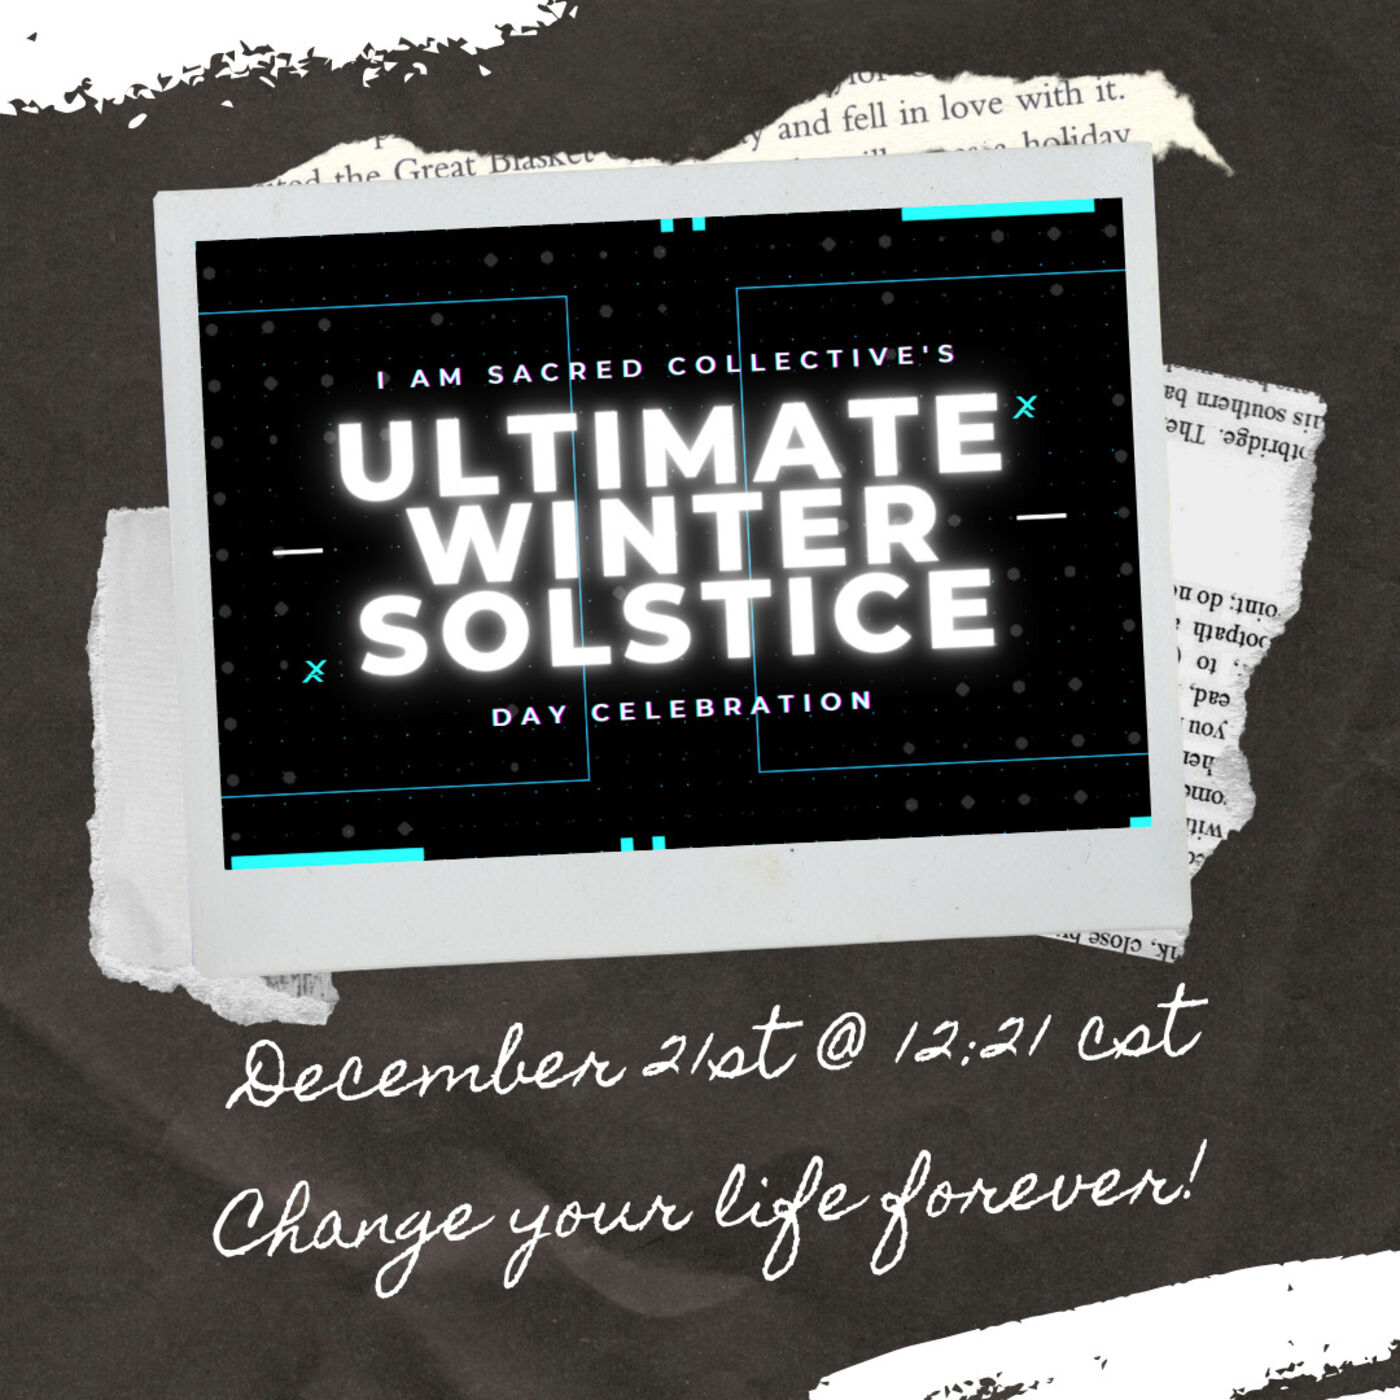 Bonus: The Ultimate Winter Solstice Replay